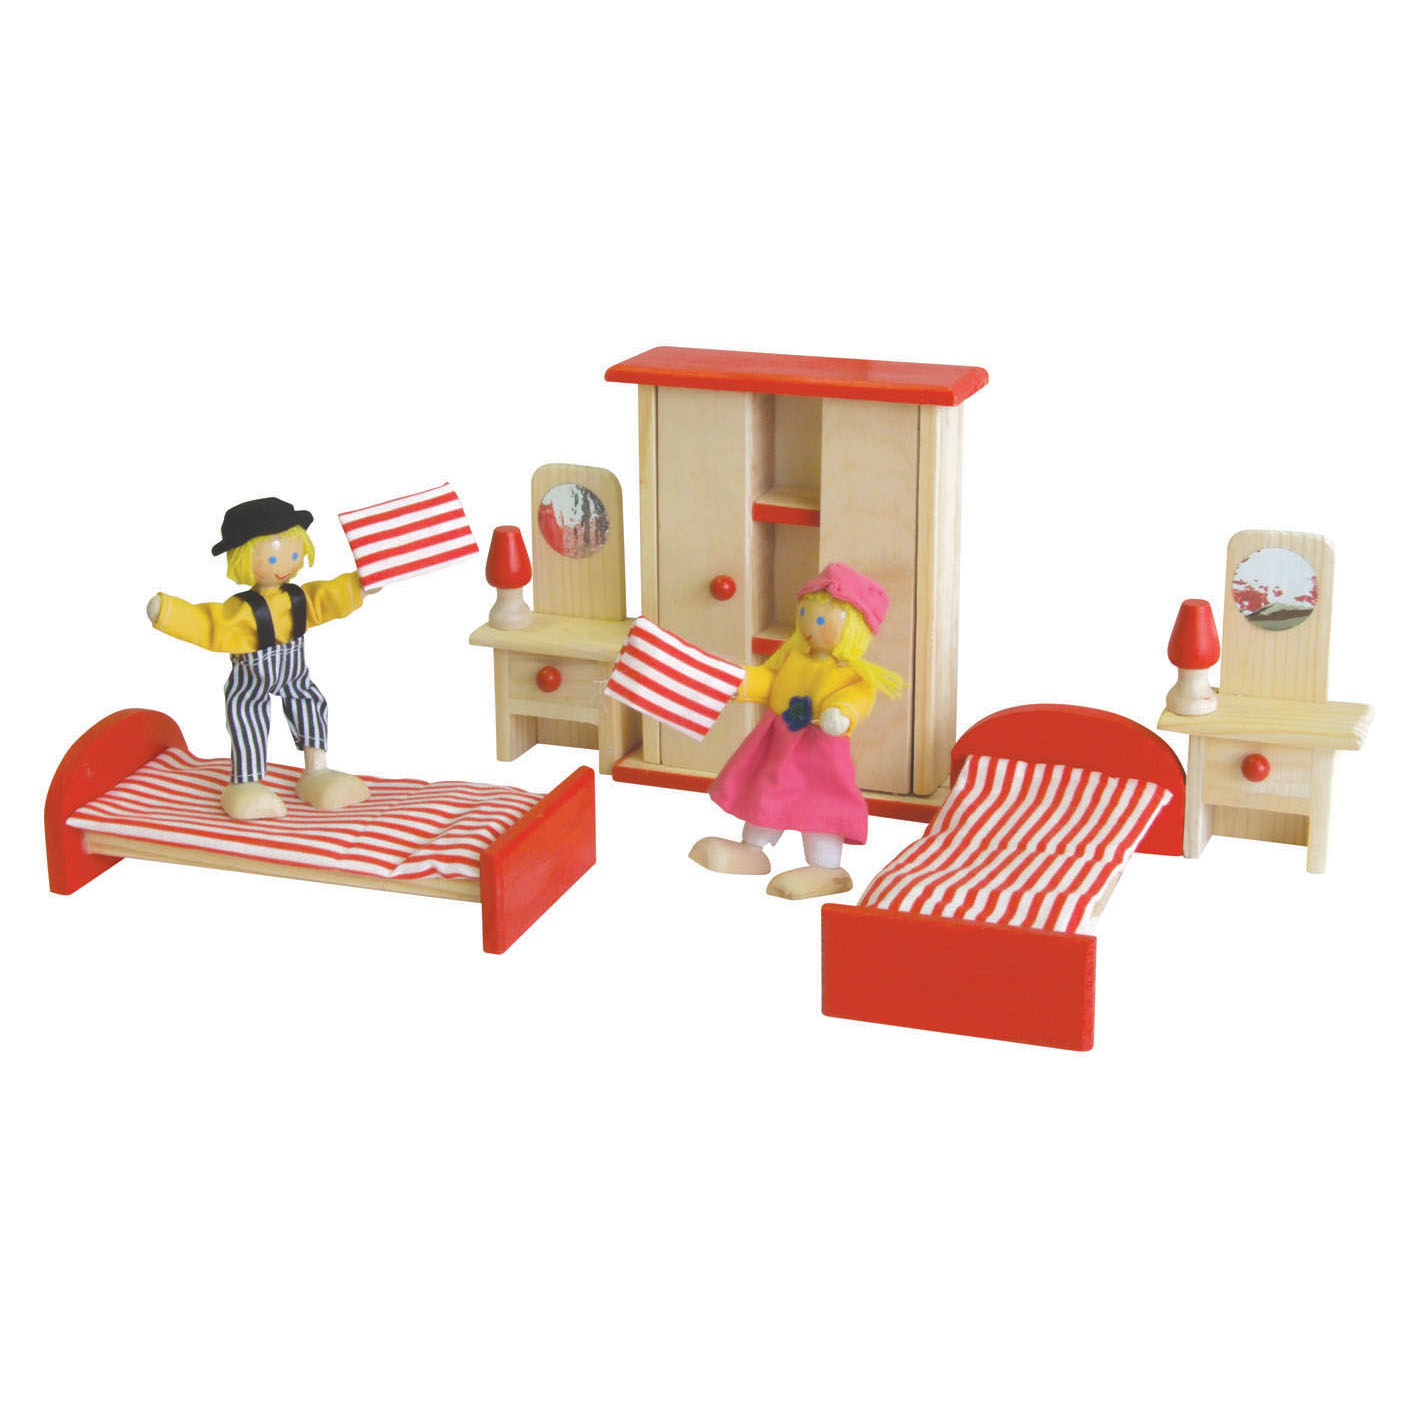 Pine Furniture for doll house (suitable for 3yrs+)